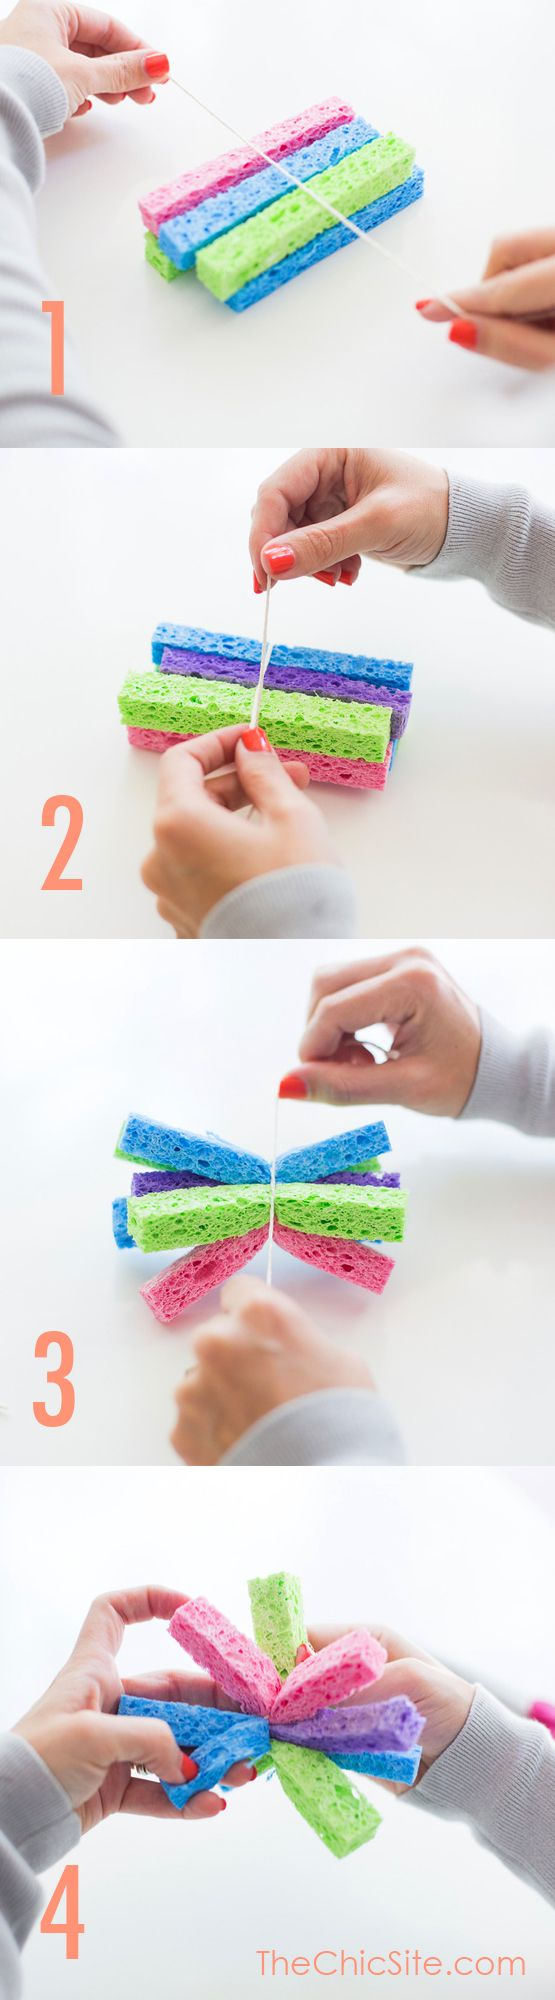 Easy DIY Tutorial on How To make Kids Sponge Water Bombs! Great idea for Summer Kids Parties! www.thechicsite.com